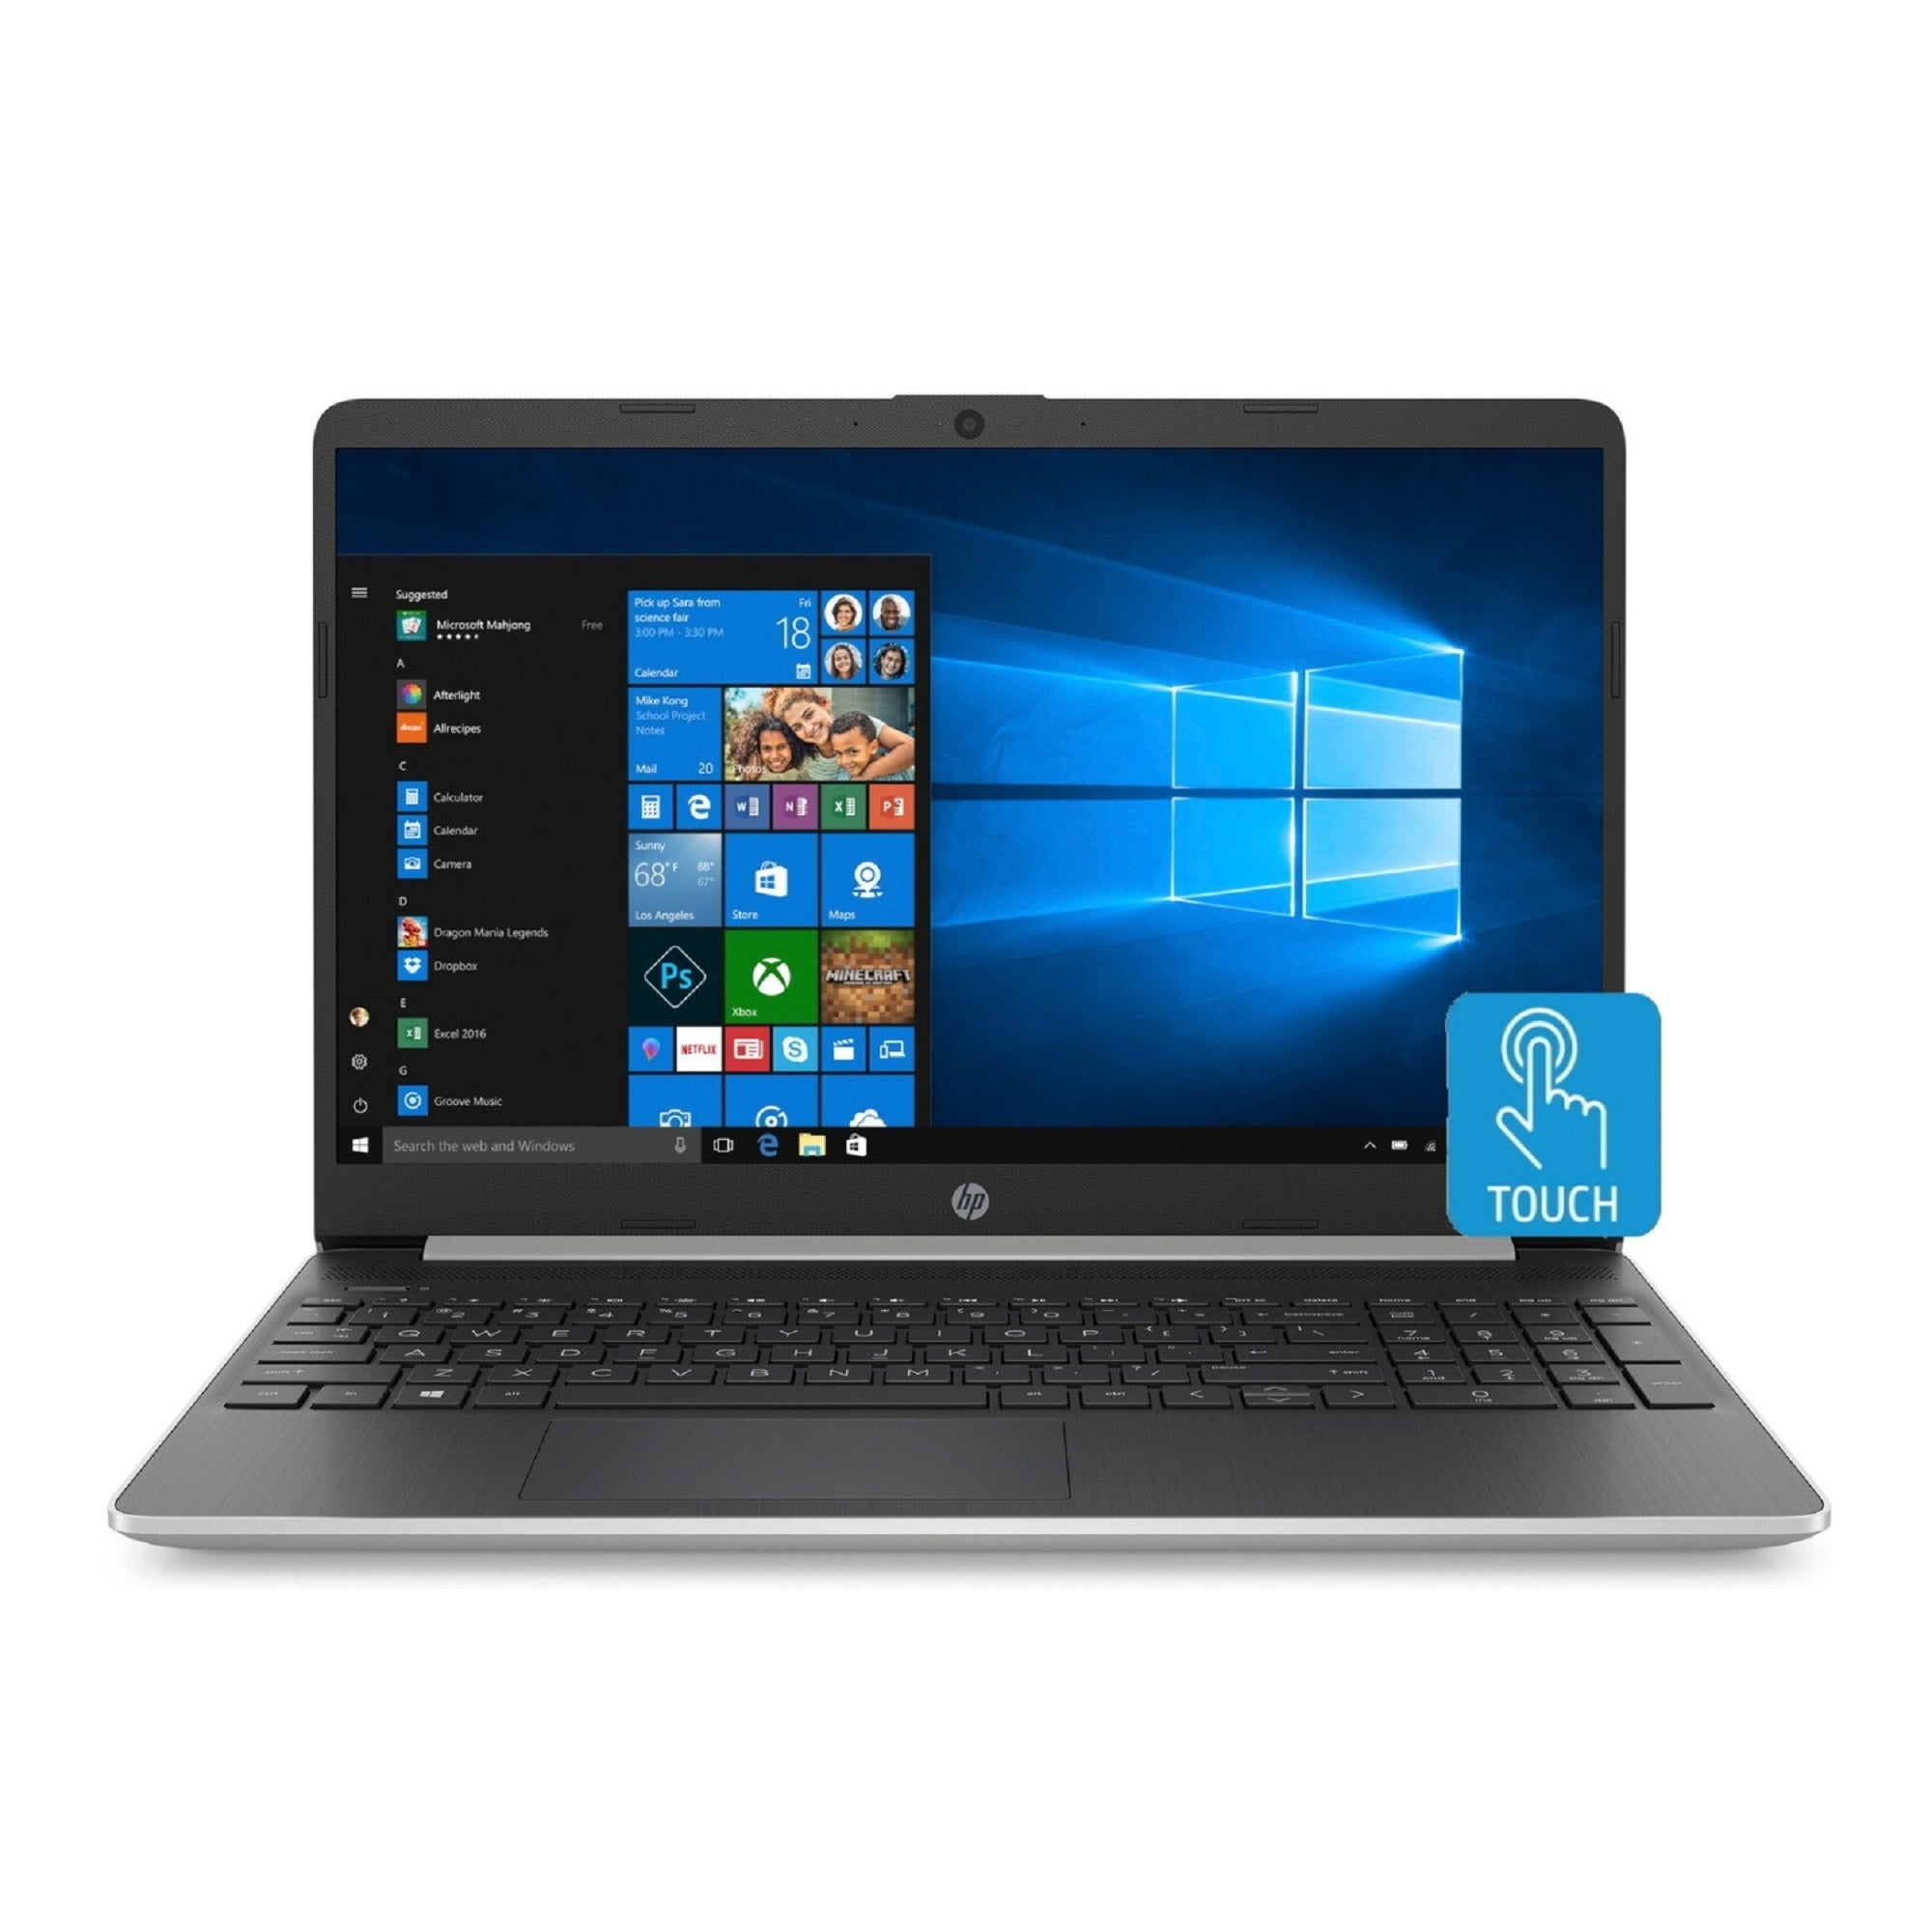 HP 15-DY 10th Gen Intel i3 8GB 256GB 15.6 Touch WLED Laptop (Renewed) - Rite Gadgets